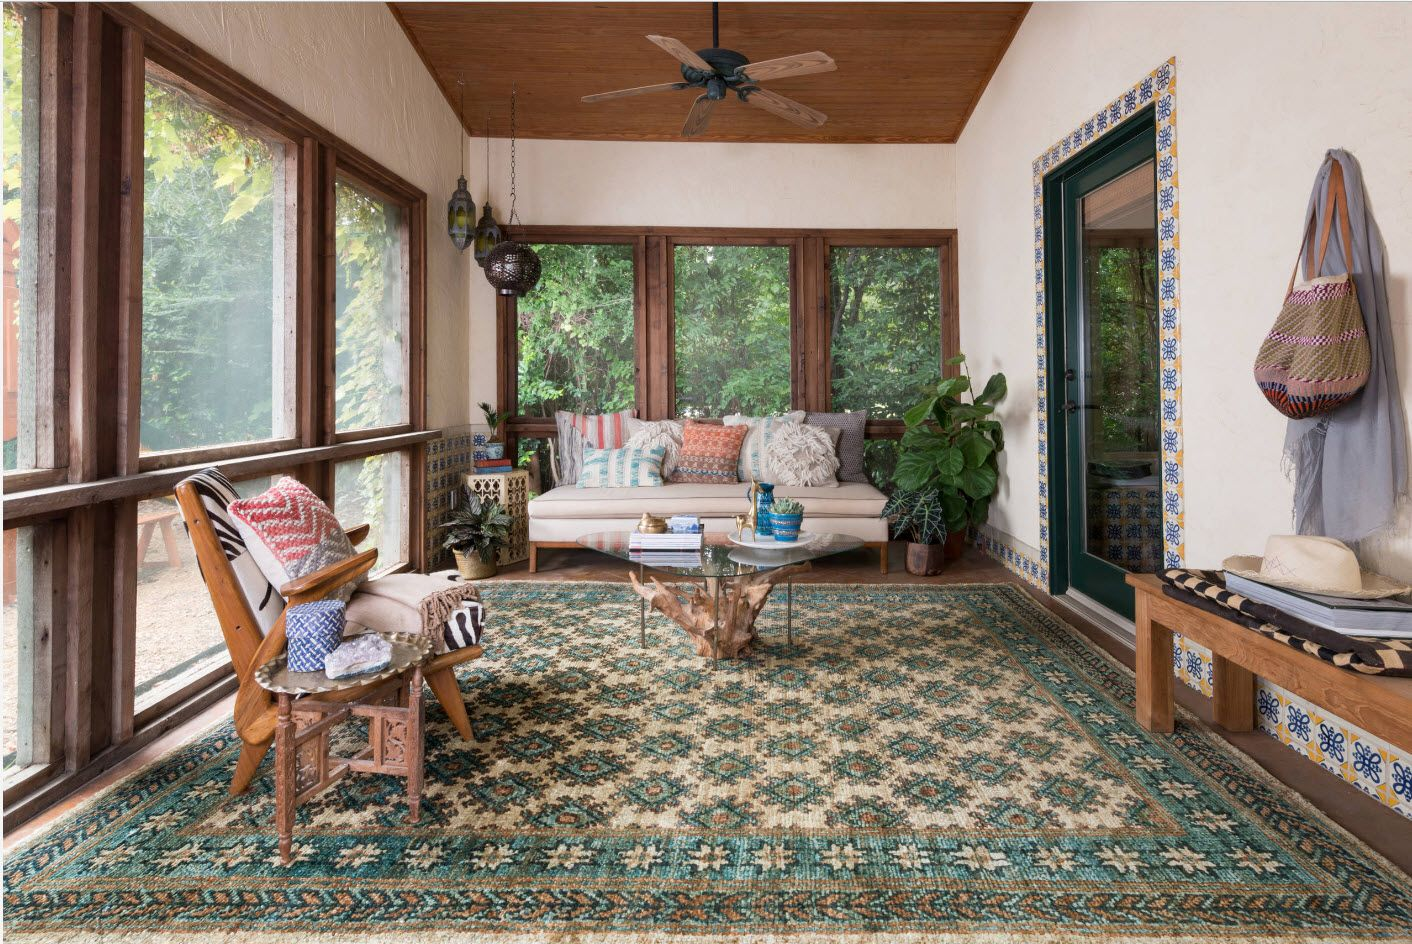 Rustic styled porch area with large rug